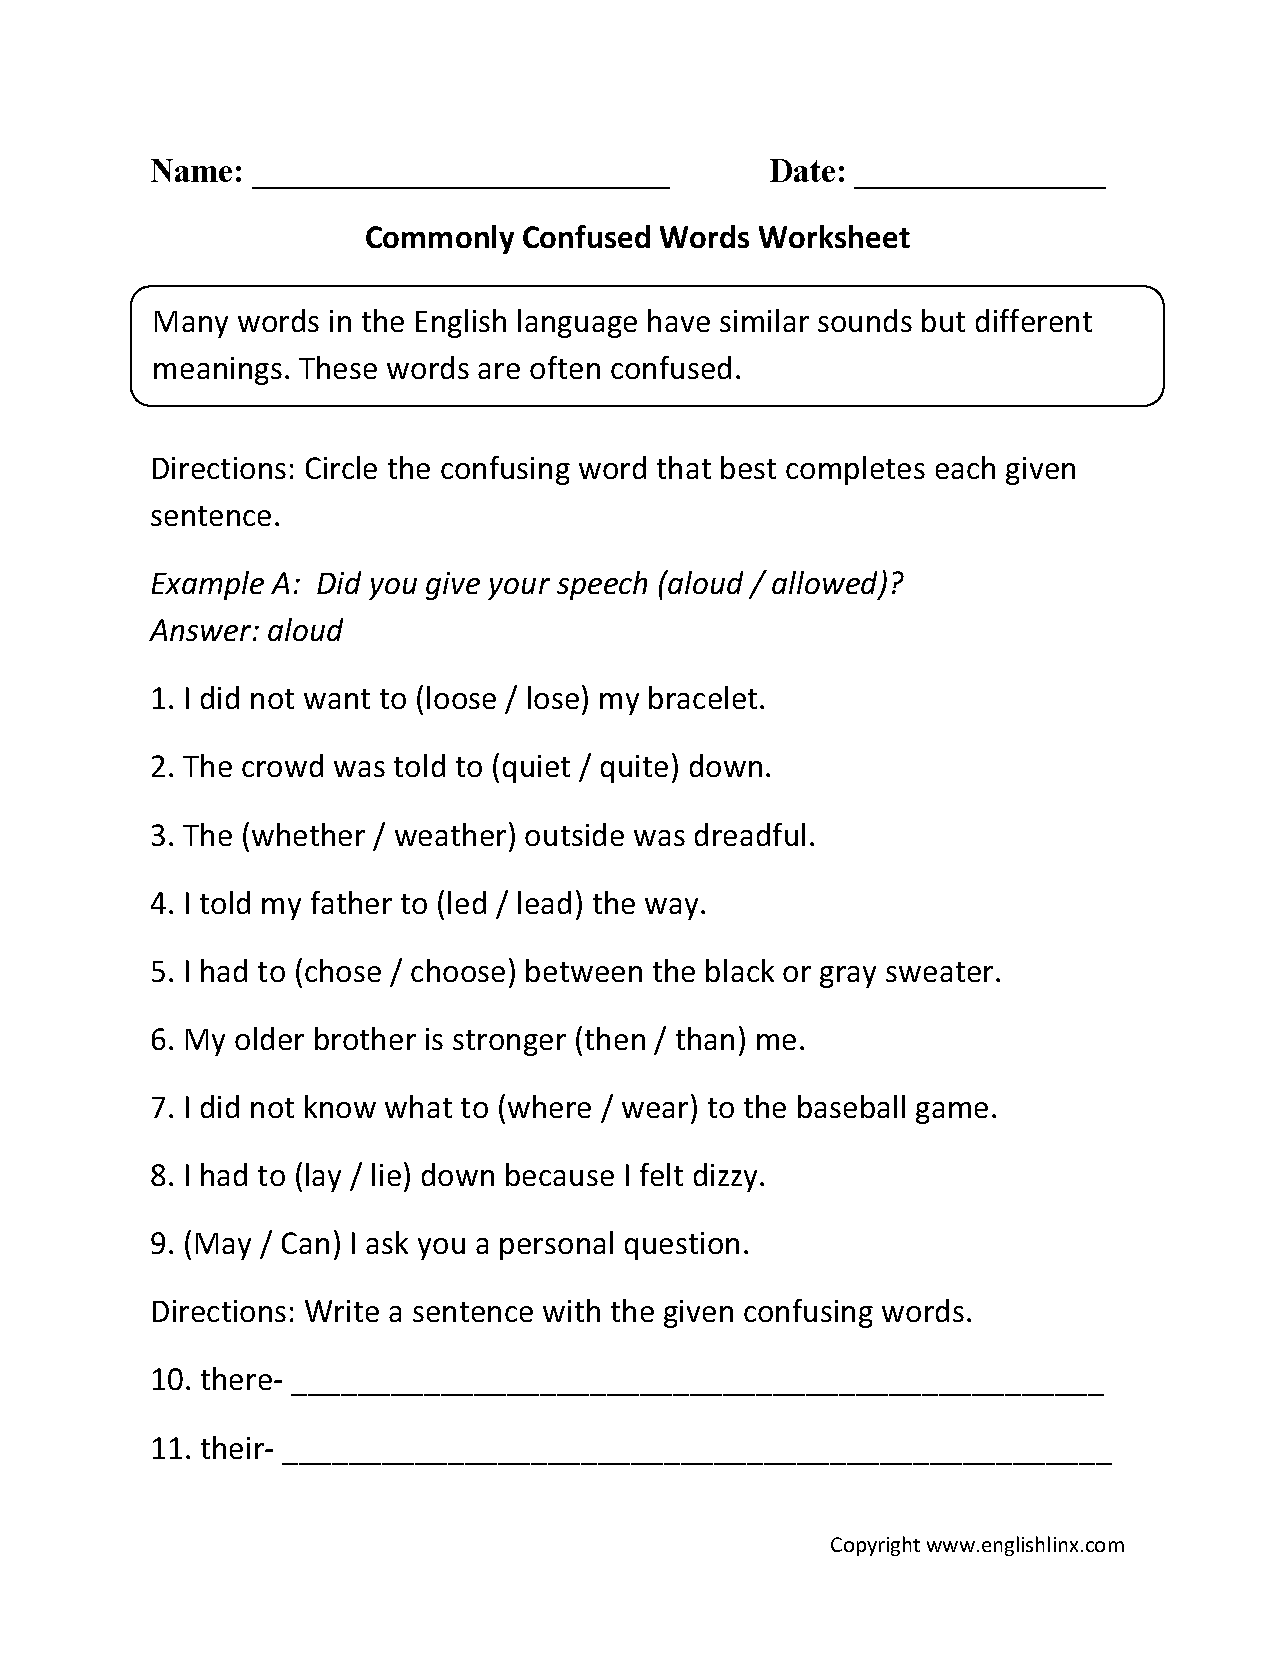 worksheet Commonly Confused Words Worksheet 17 images about commonly confused words on pinterest english language give definition and word wa